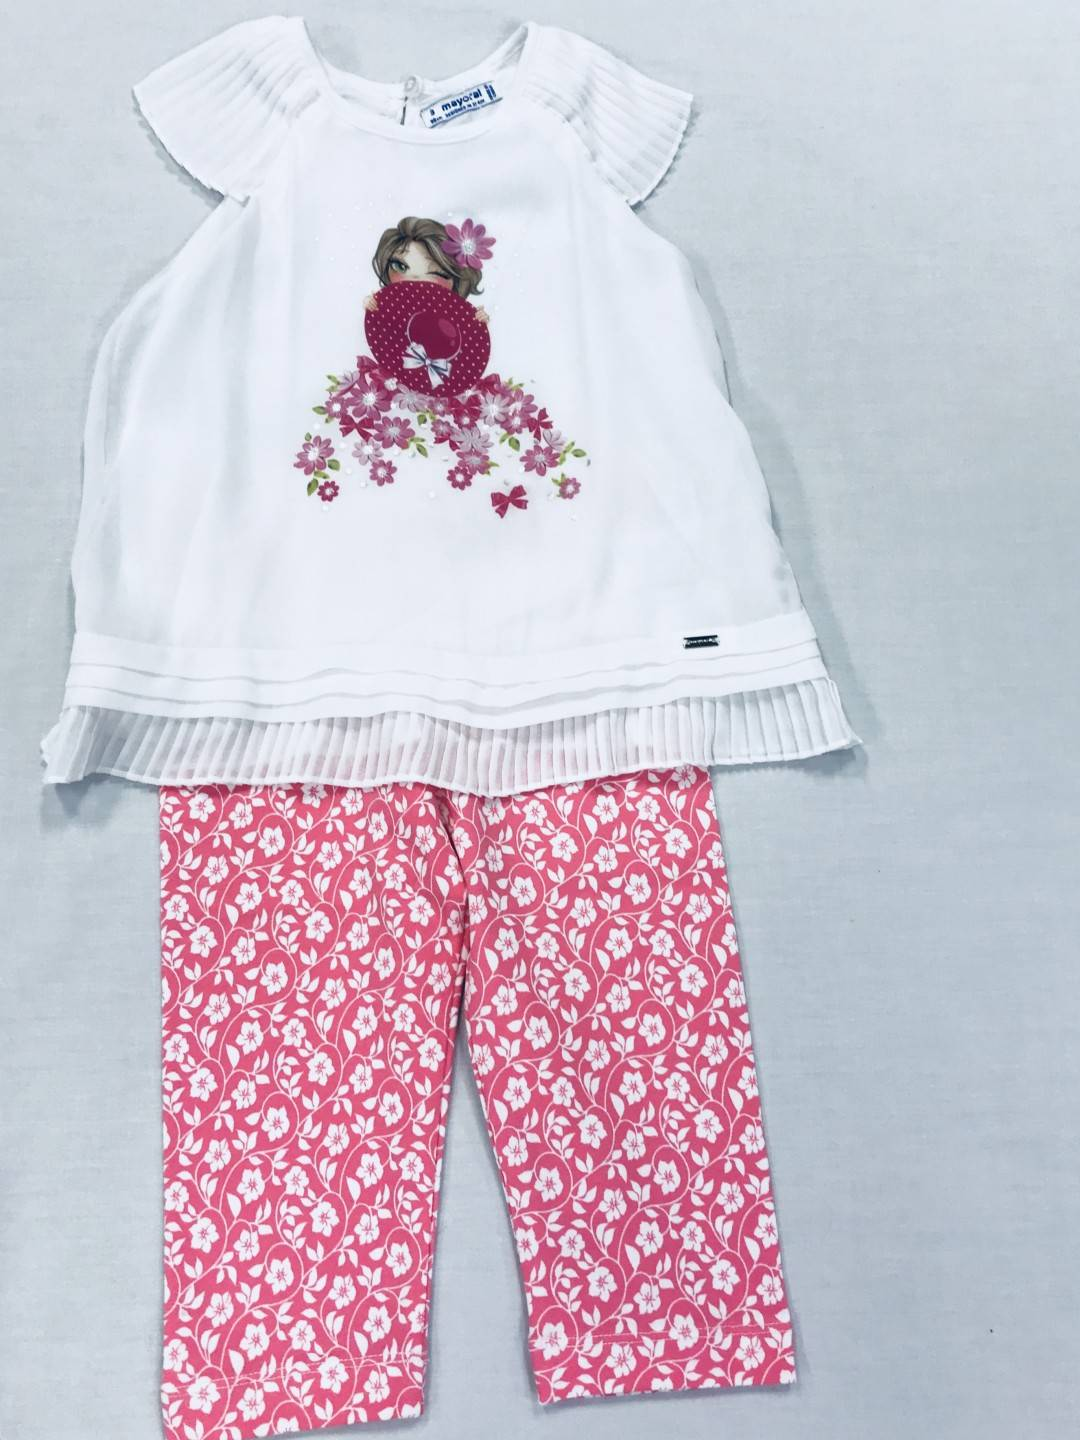 PINK AND WHITE FLORAL 2-PIECE SET SIZES 2-8